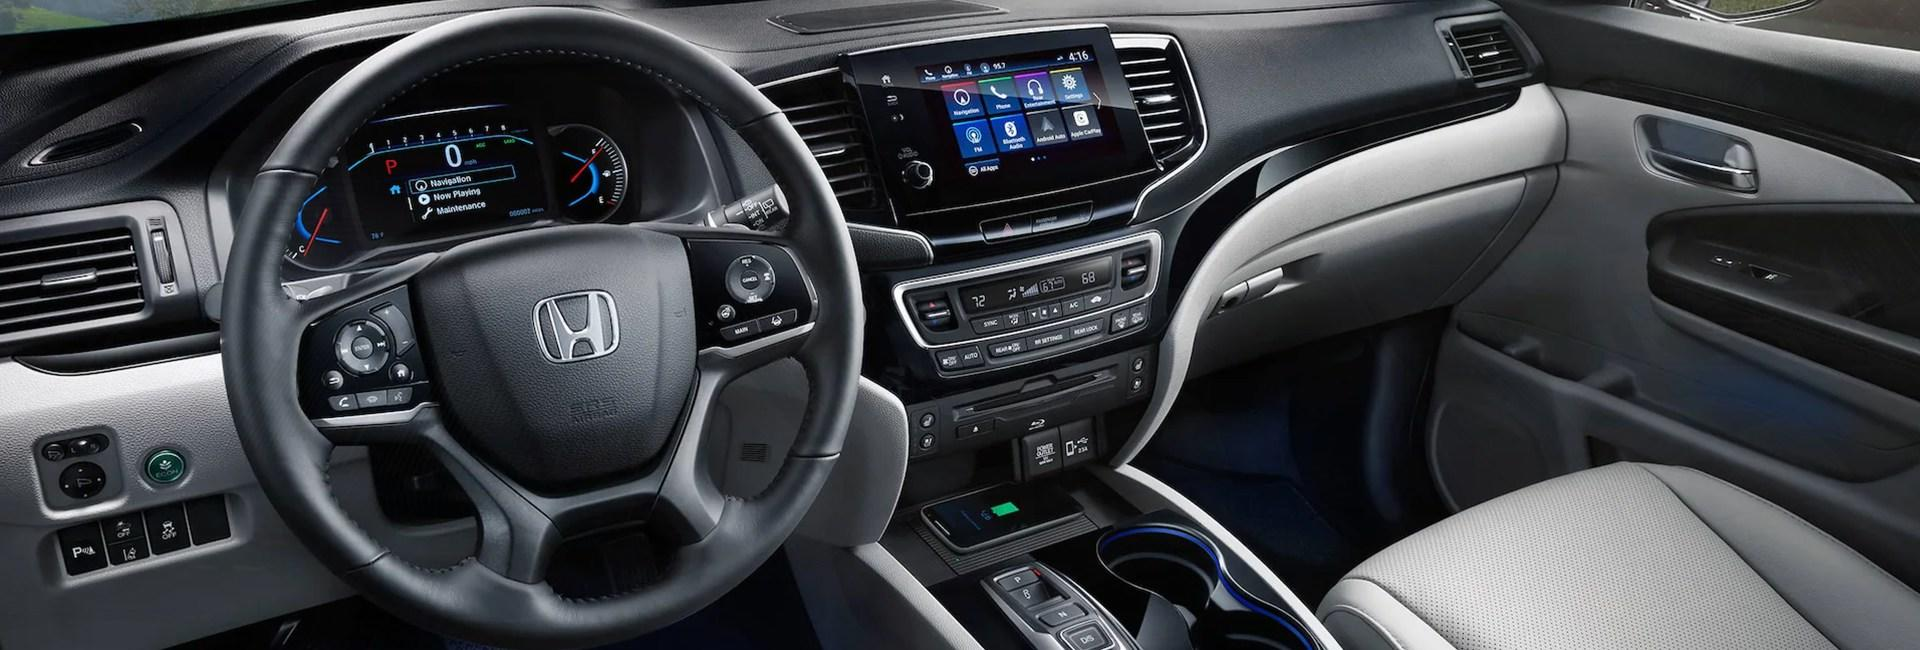 Close up view of a Honda Pilot's steering wheel and dashboard